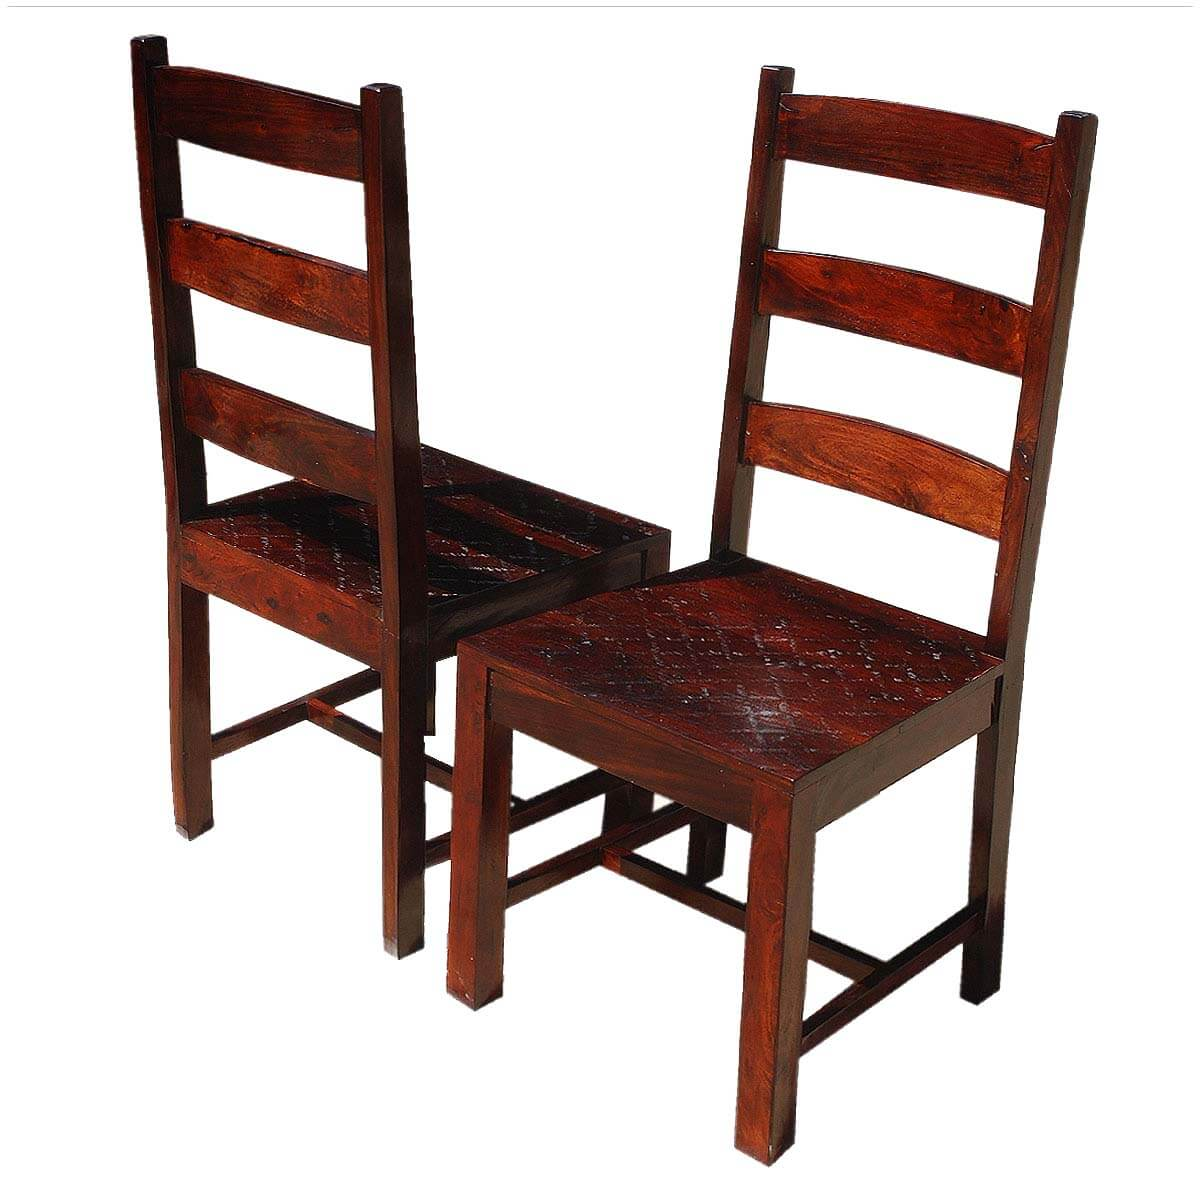 Oklahoma farmhouse solid wood ladder back chairs set of 2 Ladder back chairs